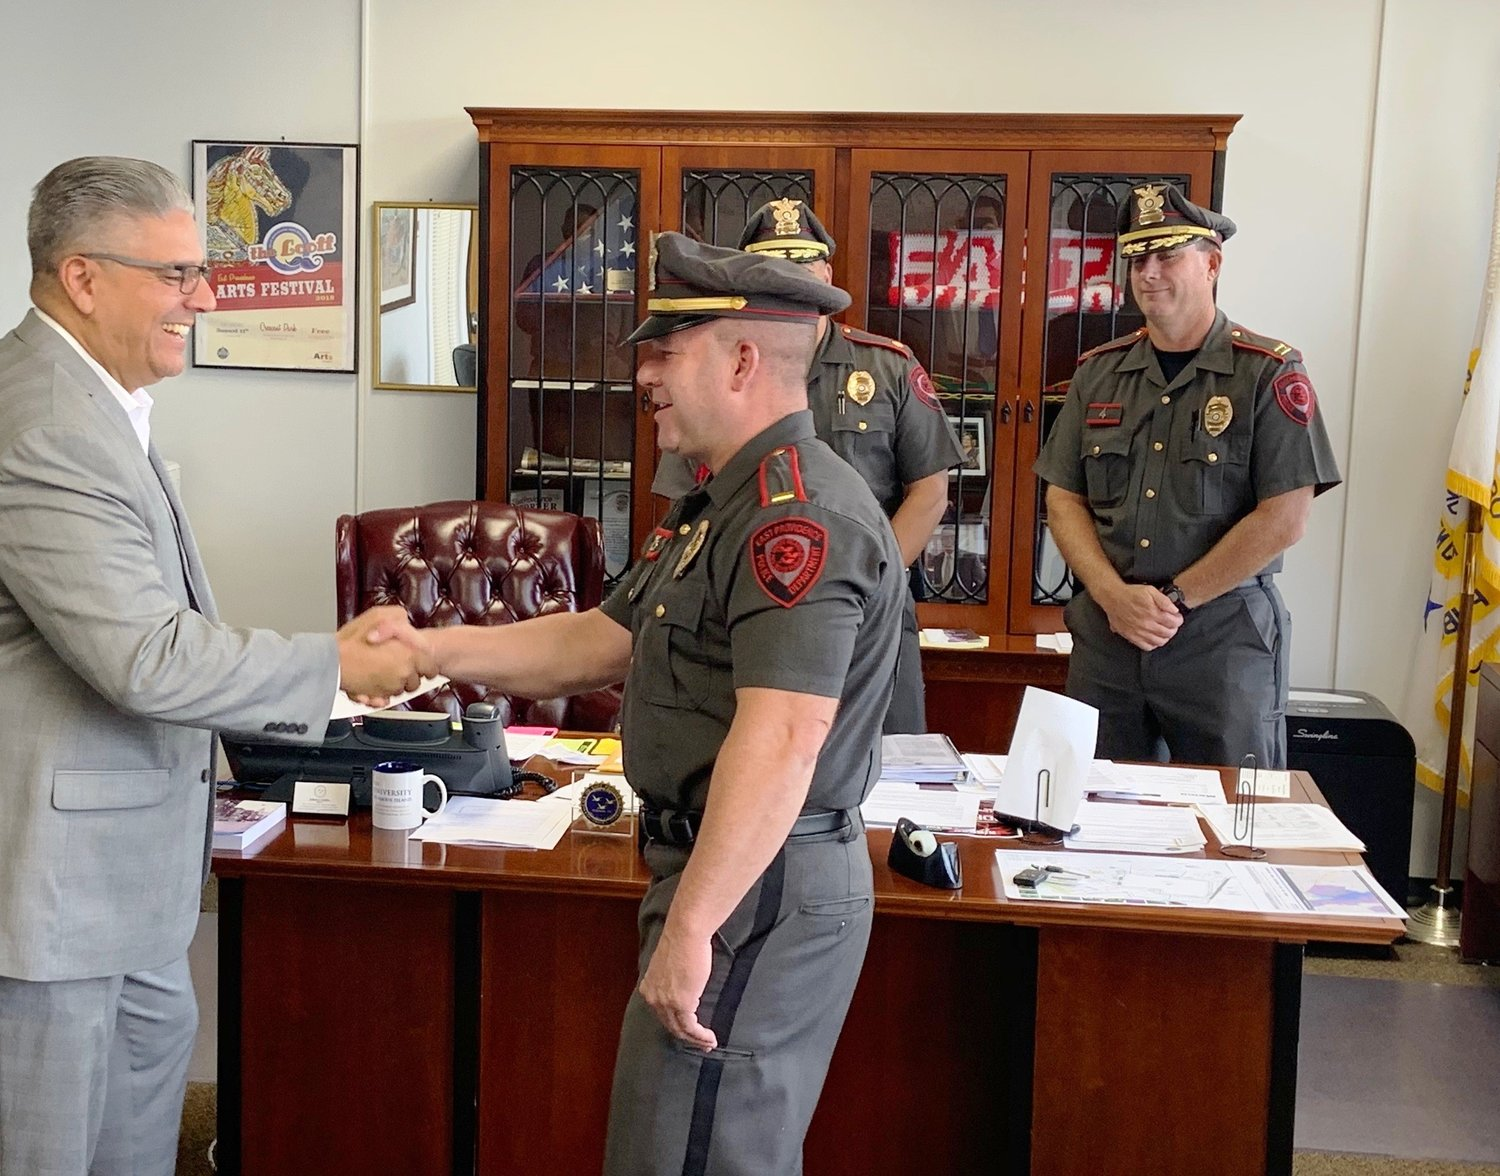 Lt. Brian Mulvey being sworn in by Mayor Bob DaSilva last month. City of East Providence photo